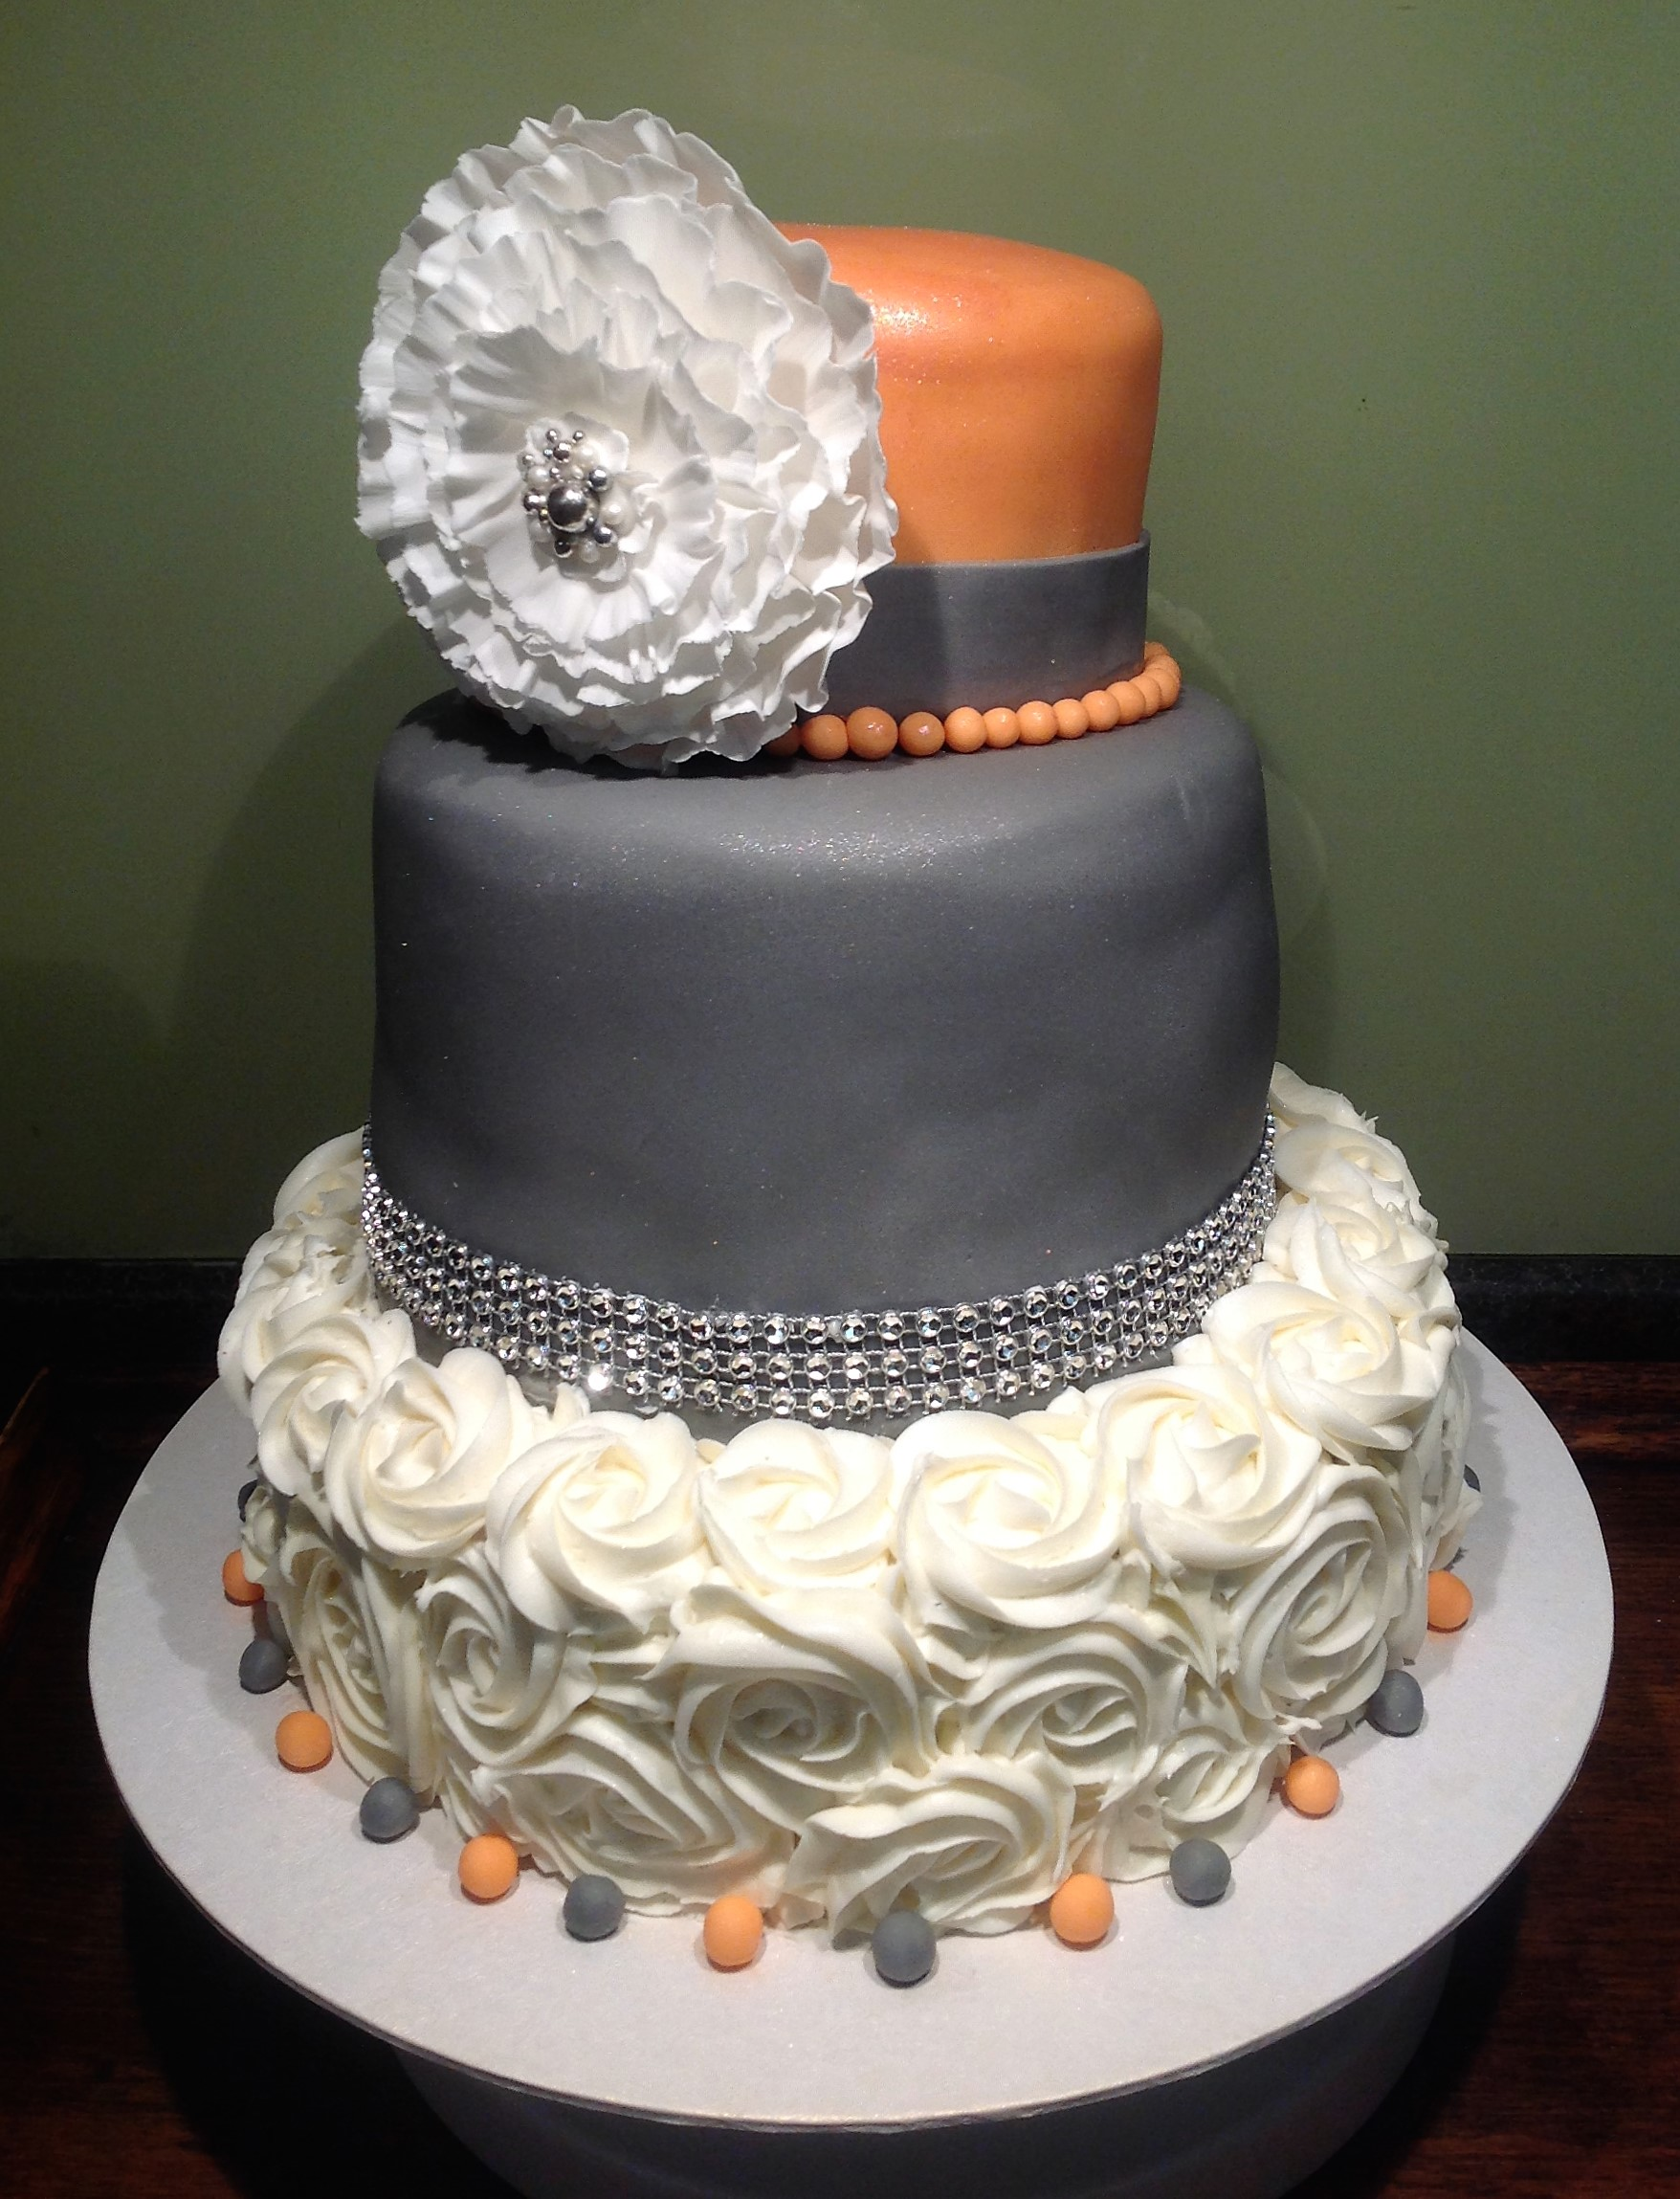 3 tiered Ruffle Flower Wedding Cake